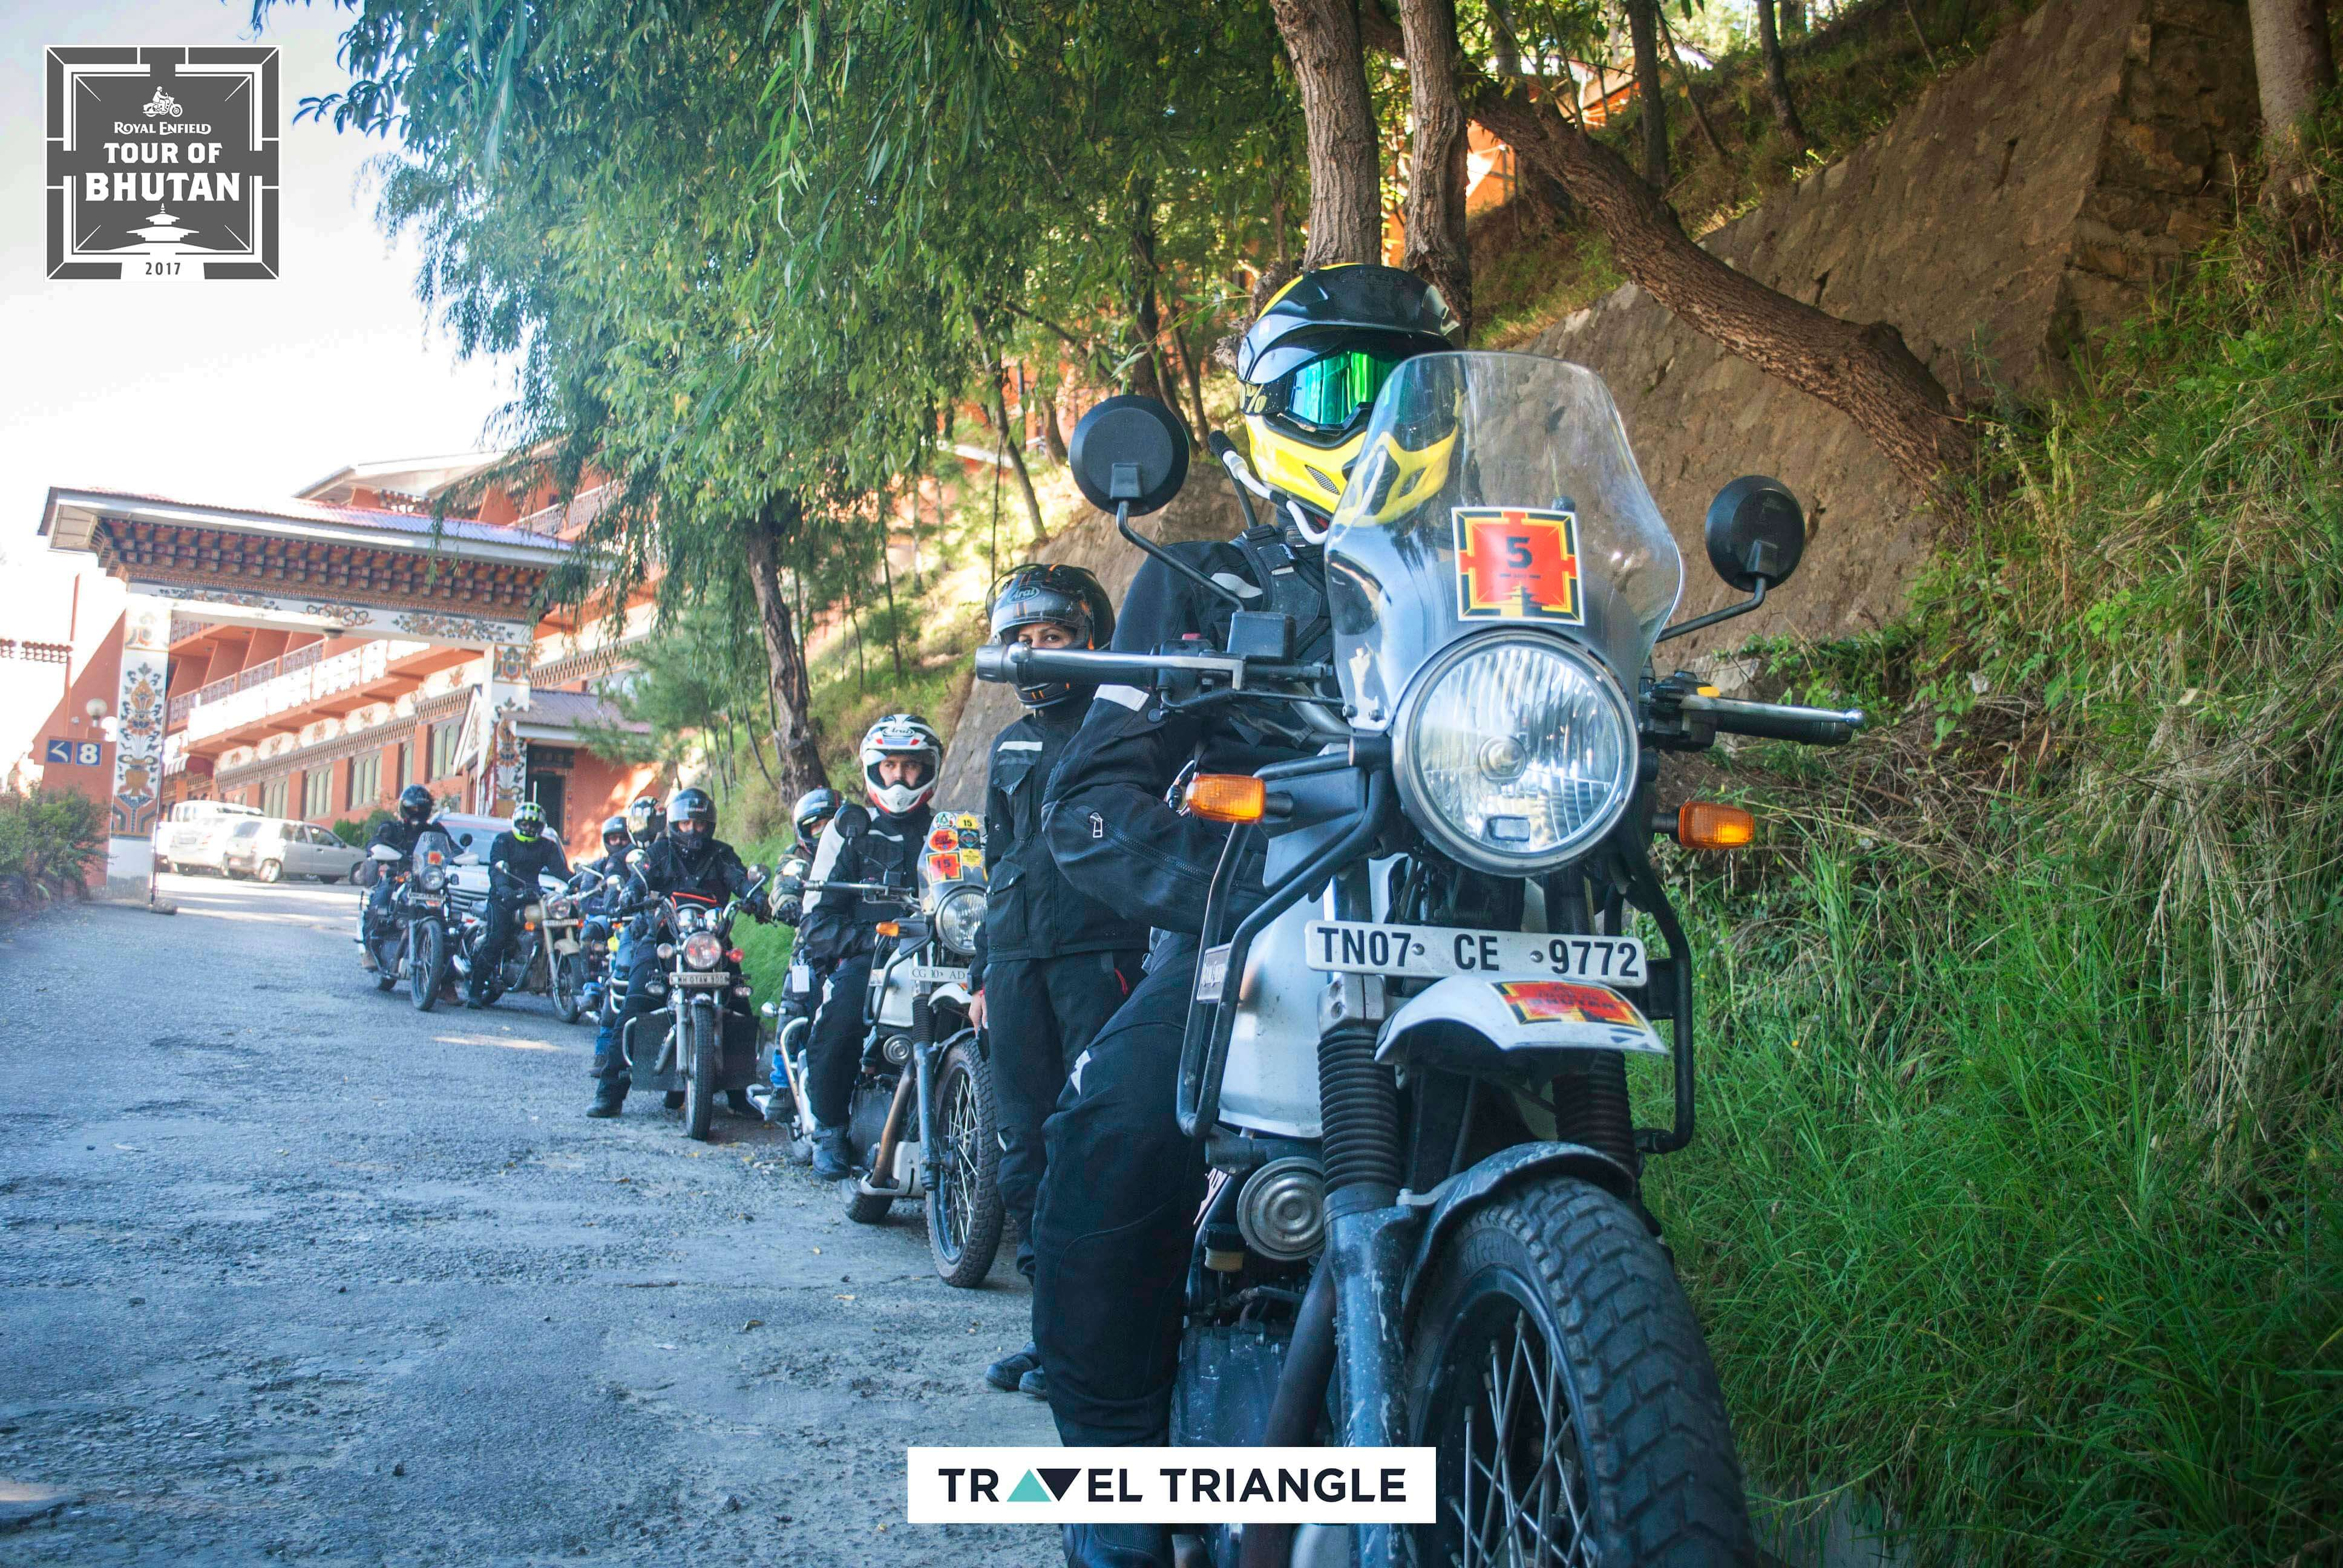 the Royal Enfield Bhutan trip group going from Thimphu to Punakha